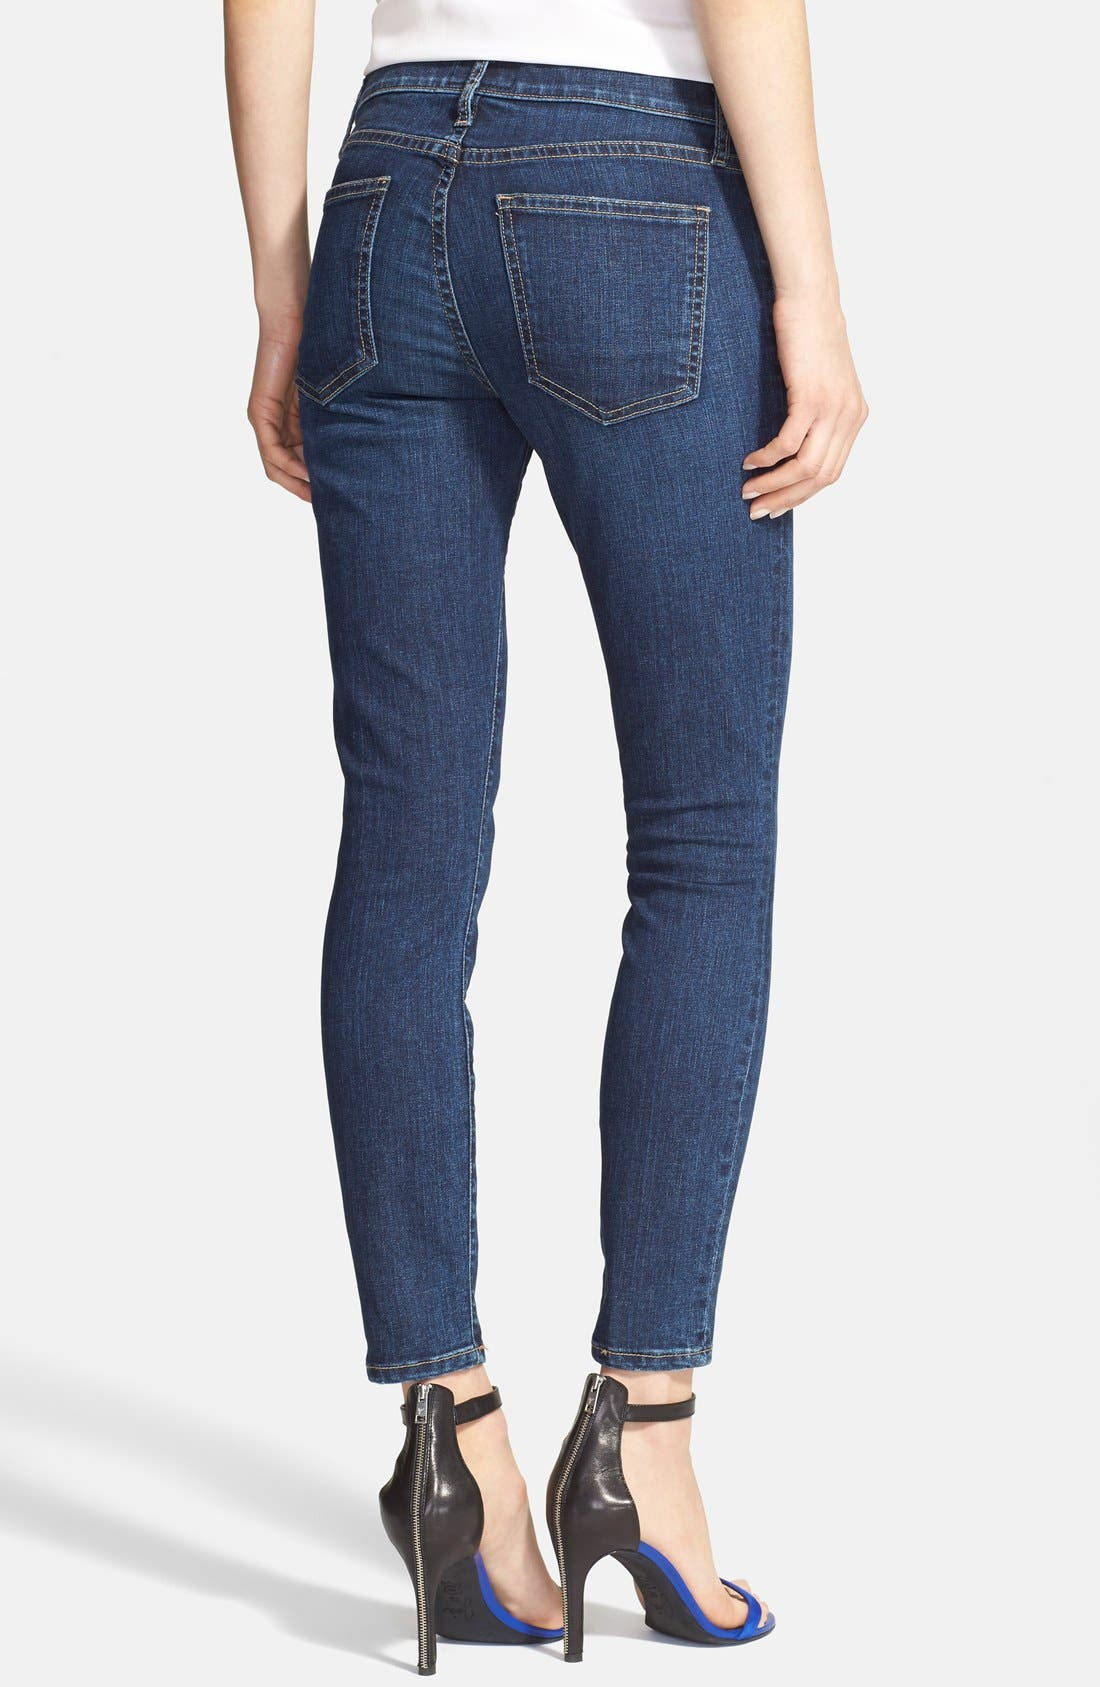 Alternate Image 2  - Current/Elliott 'The Stiletto' Stretch Skinny Jeans (Reconaissance)